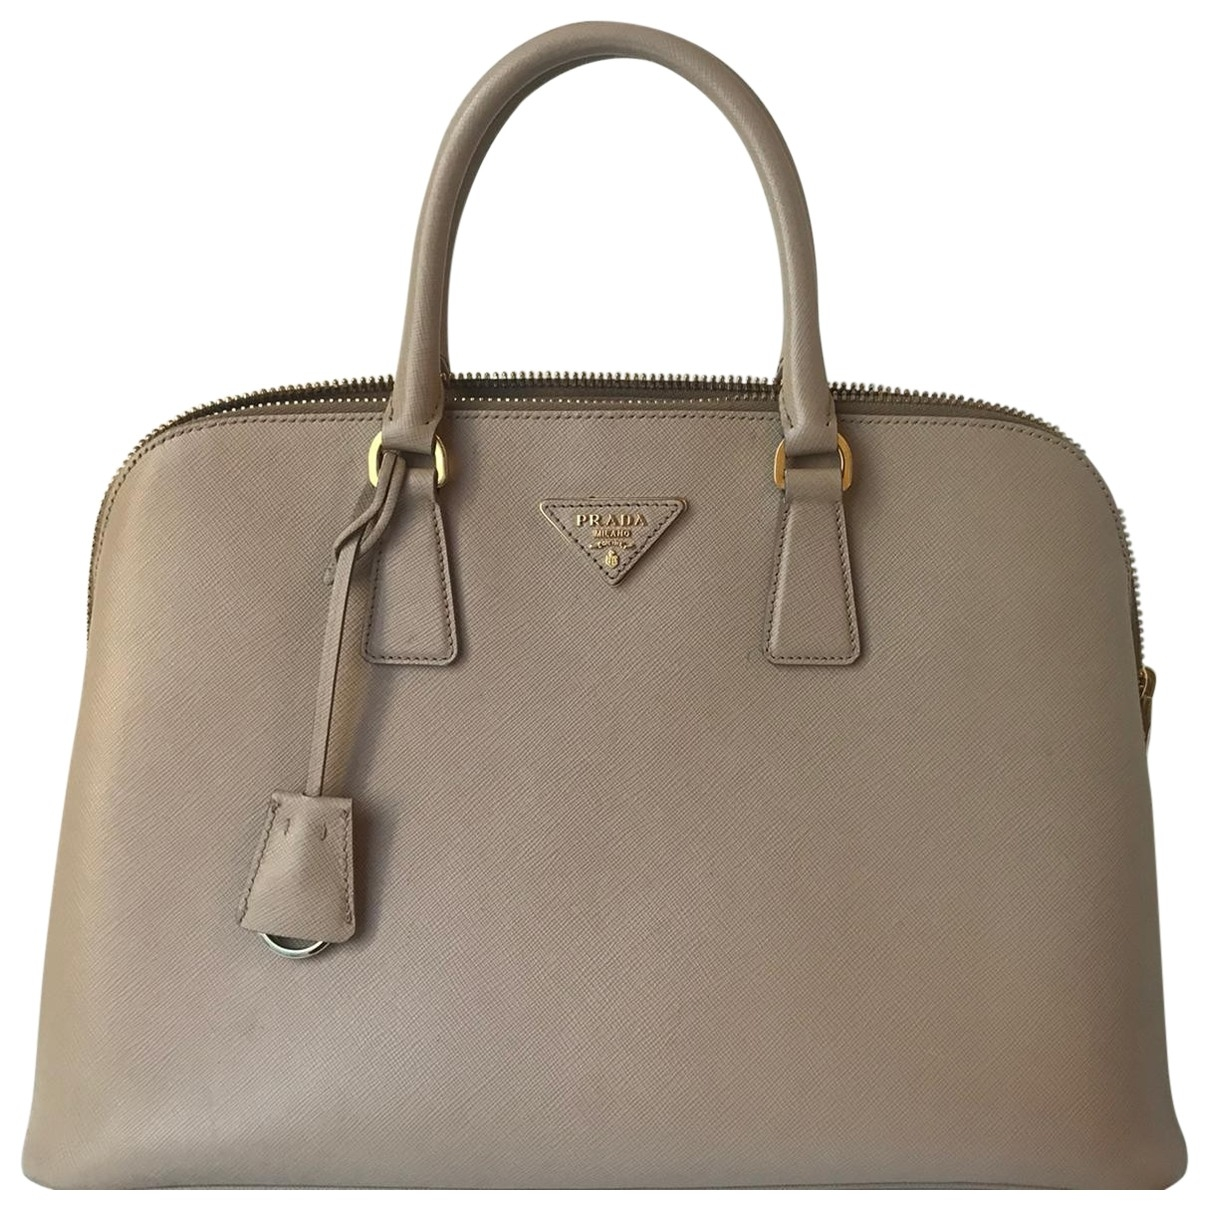 Prada Promenade Grey Leather handbag for Women \N